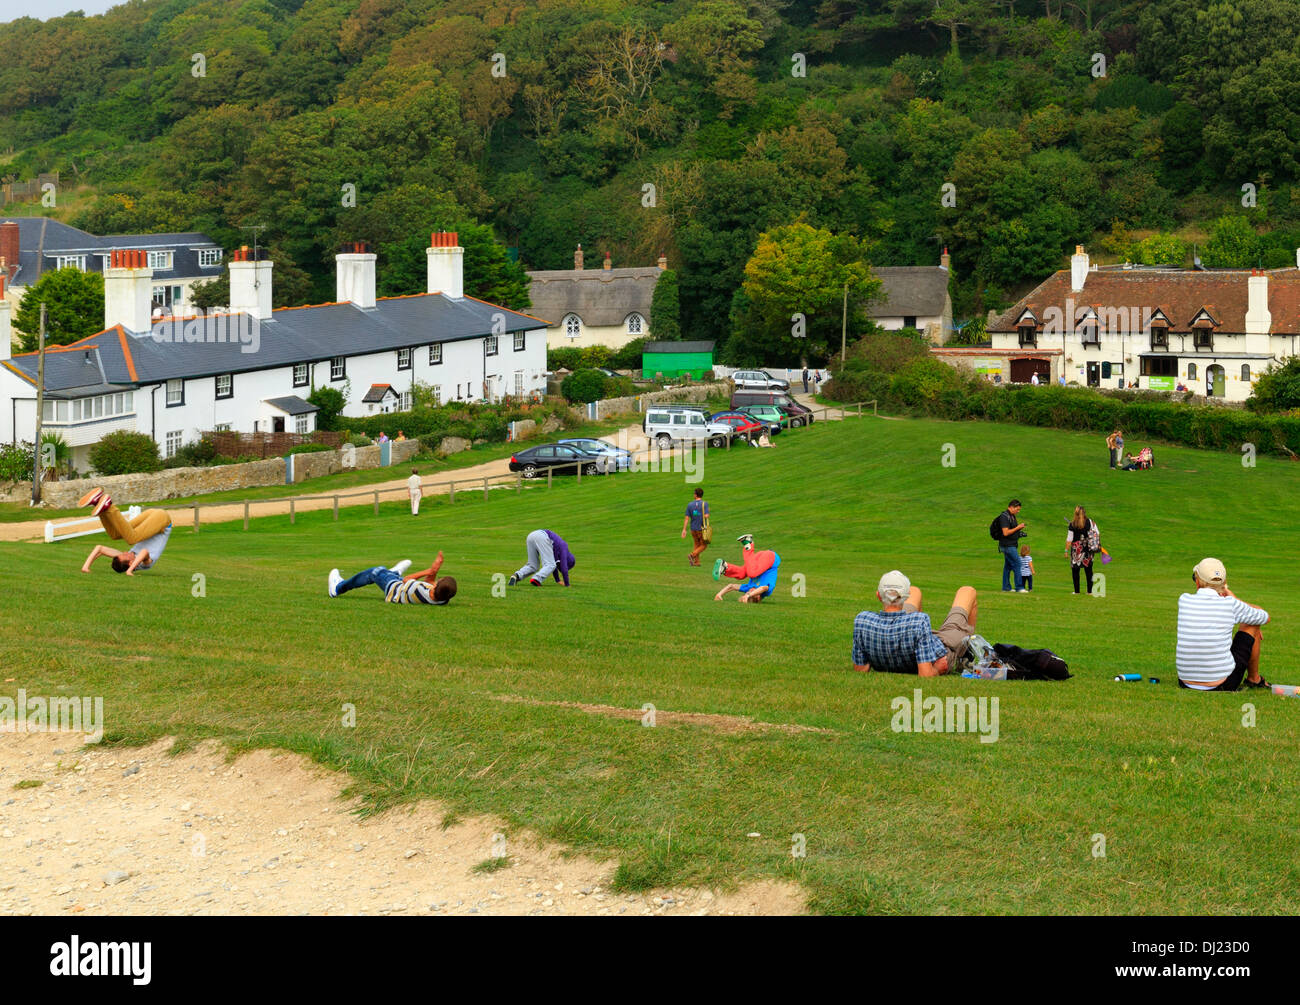 Teenagers on a school trip let off steam by somersaulting down a hill in Lulworth Cove, Dorset Stock Photo